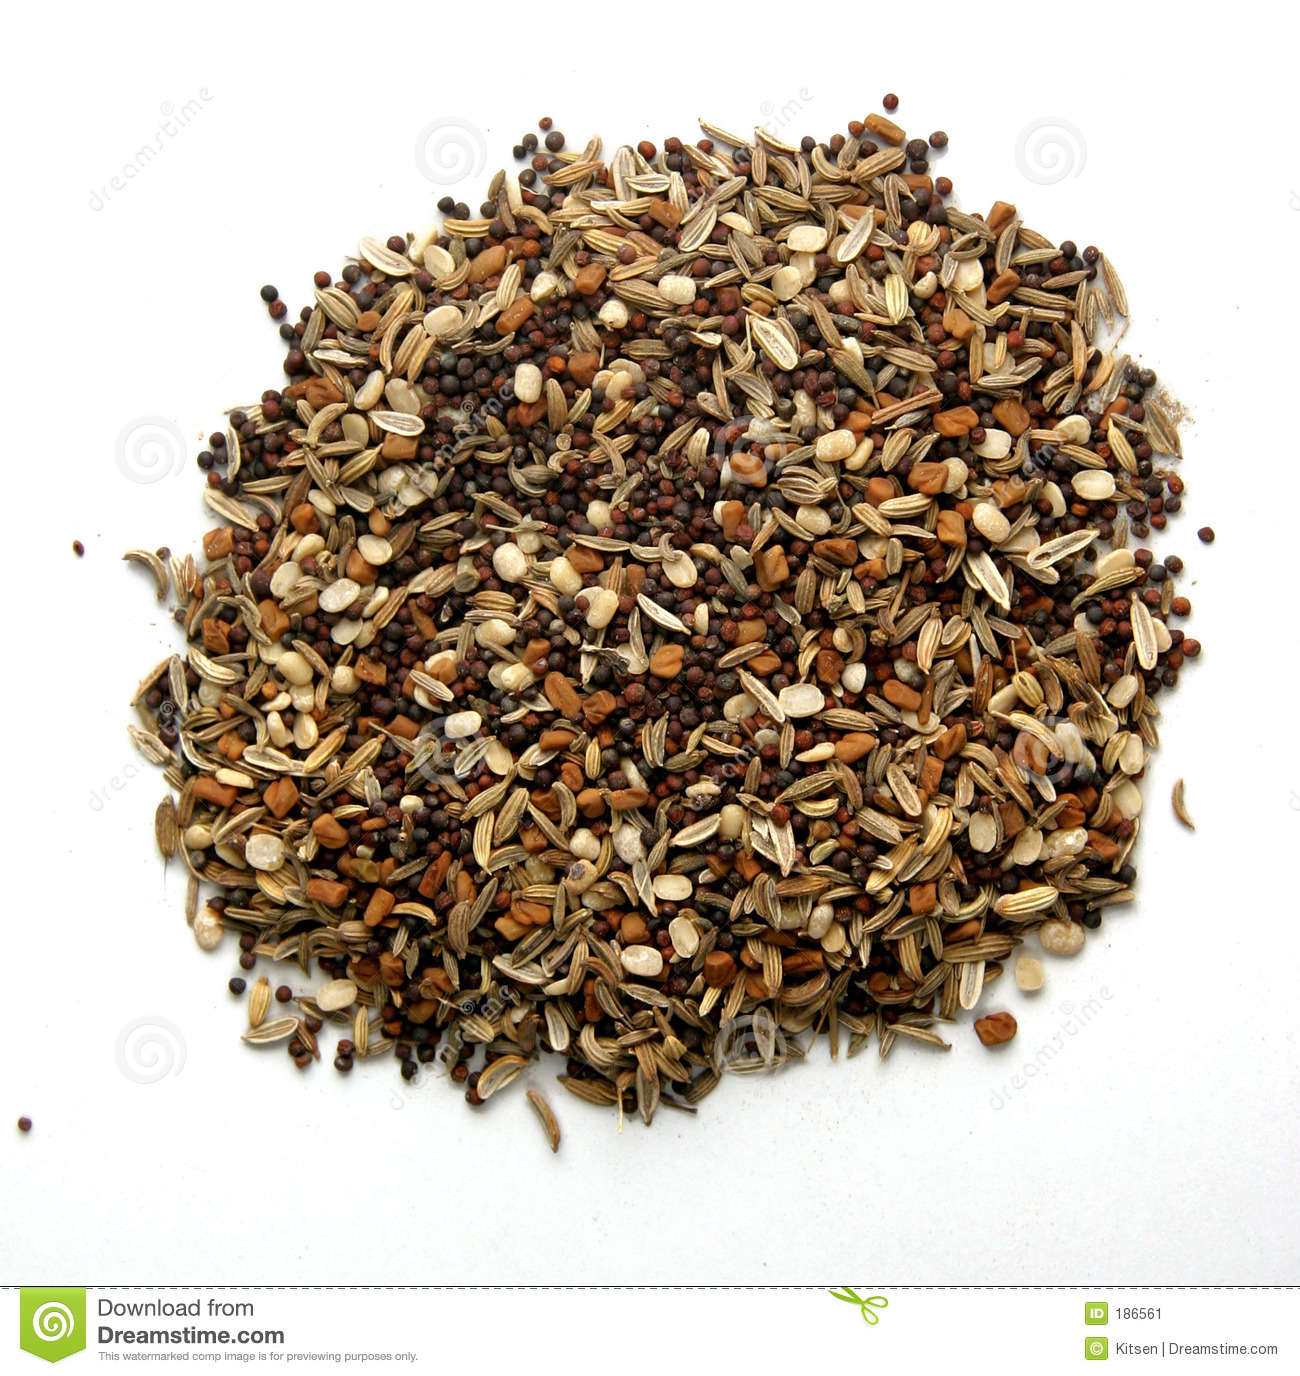 Mixed Herb & Spice